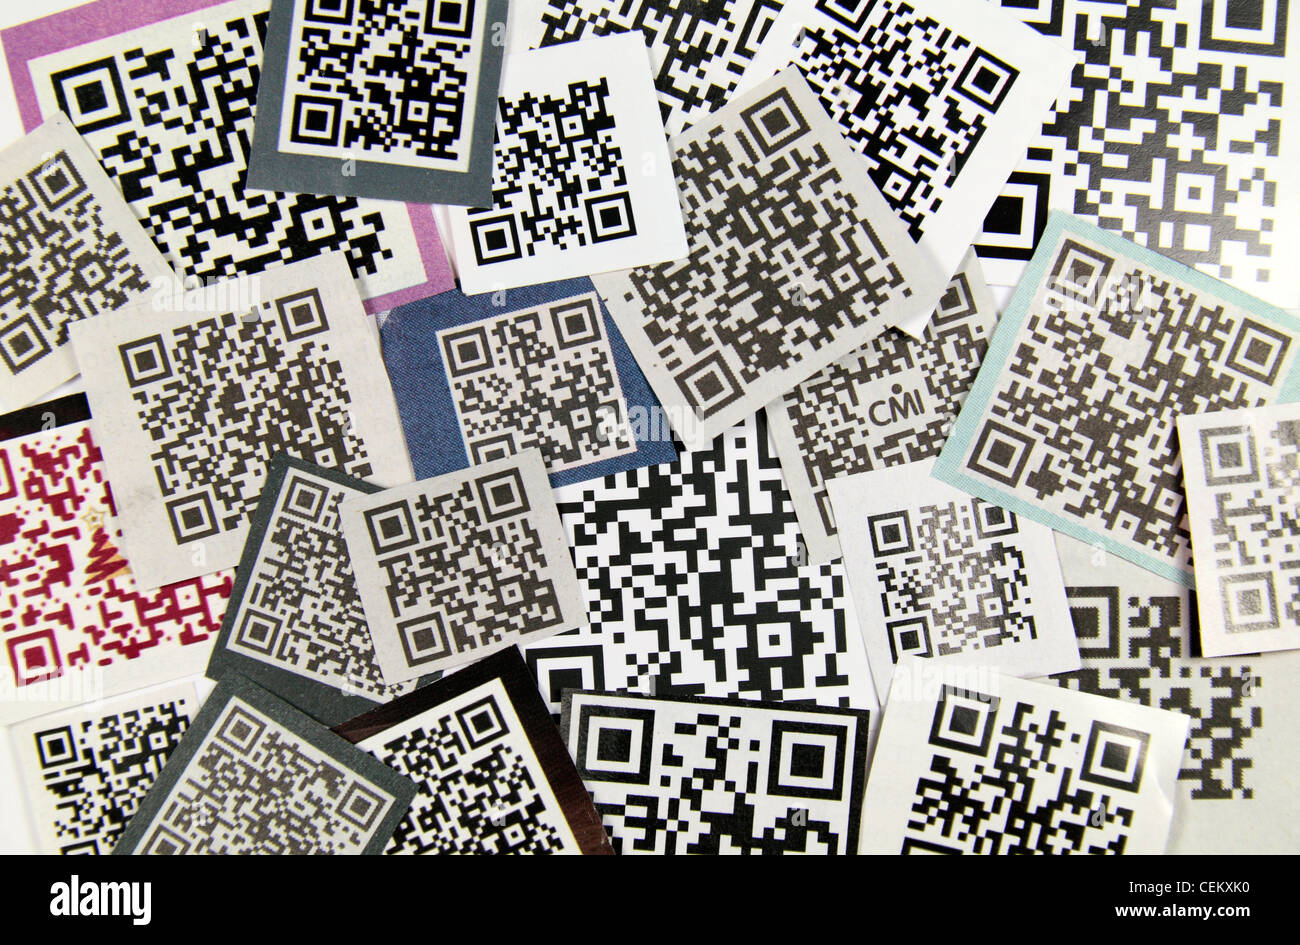 A selection of QR (Quick Response) smartphone codes taken from British newspapers and magazines in late 2011, early - Stock Image